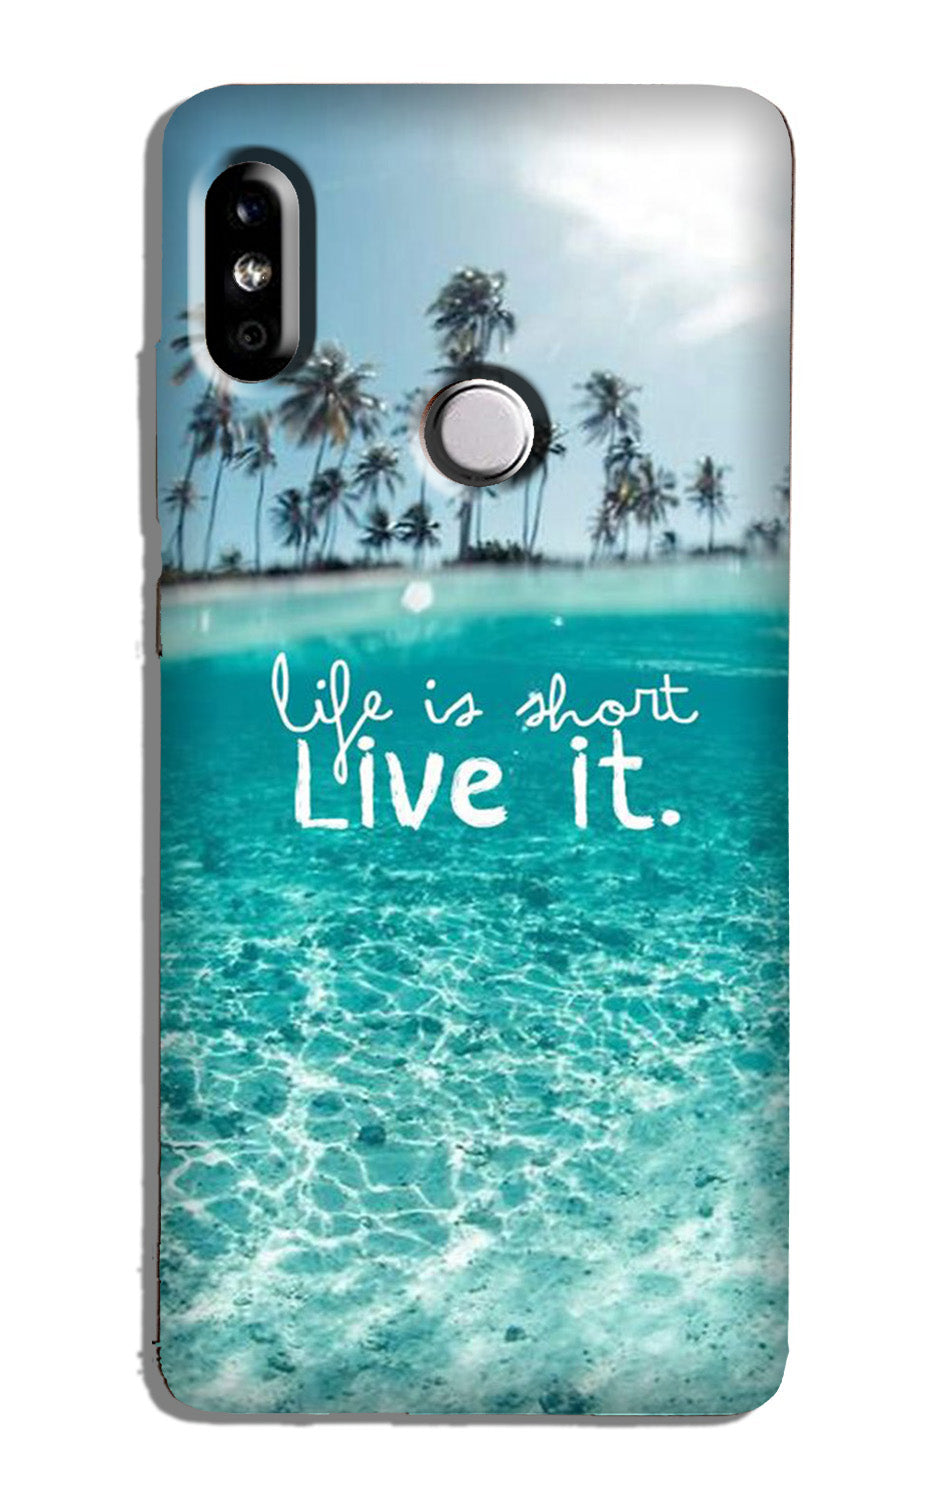 Life is short live it Case for Redmi Note 6 Pro